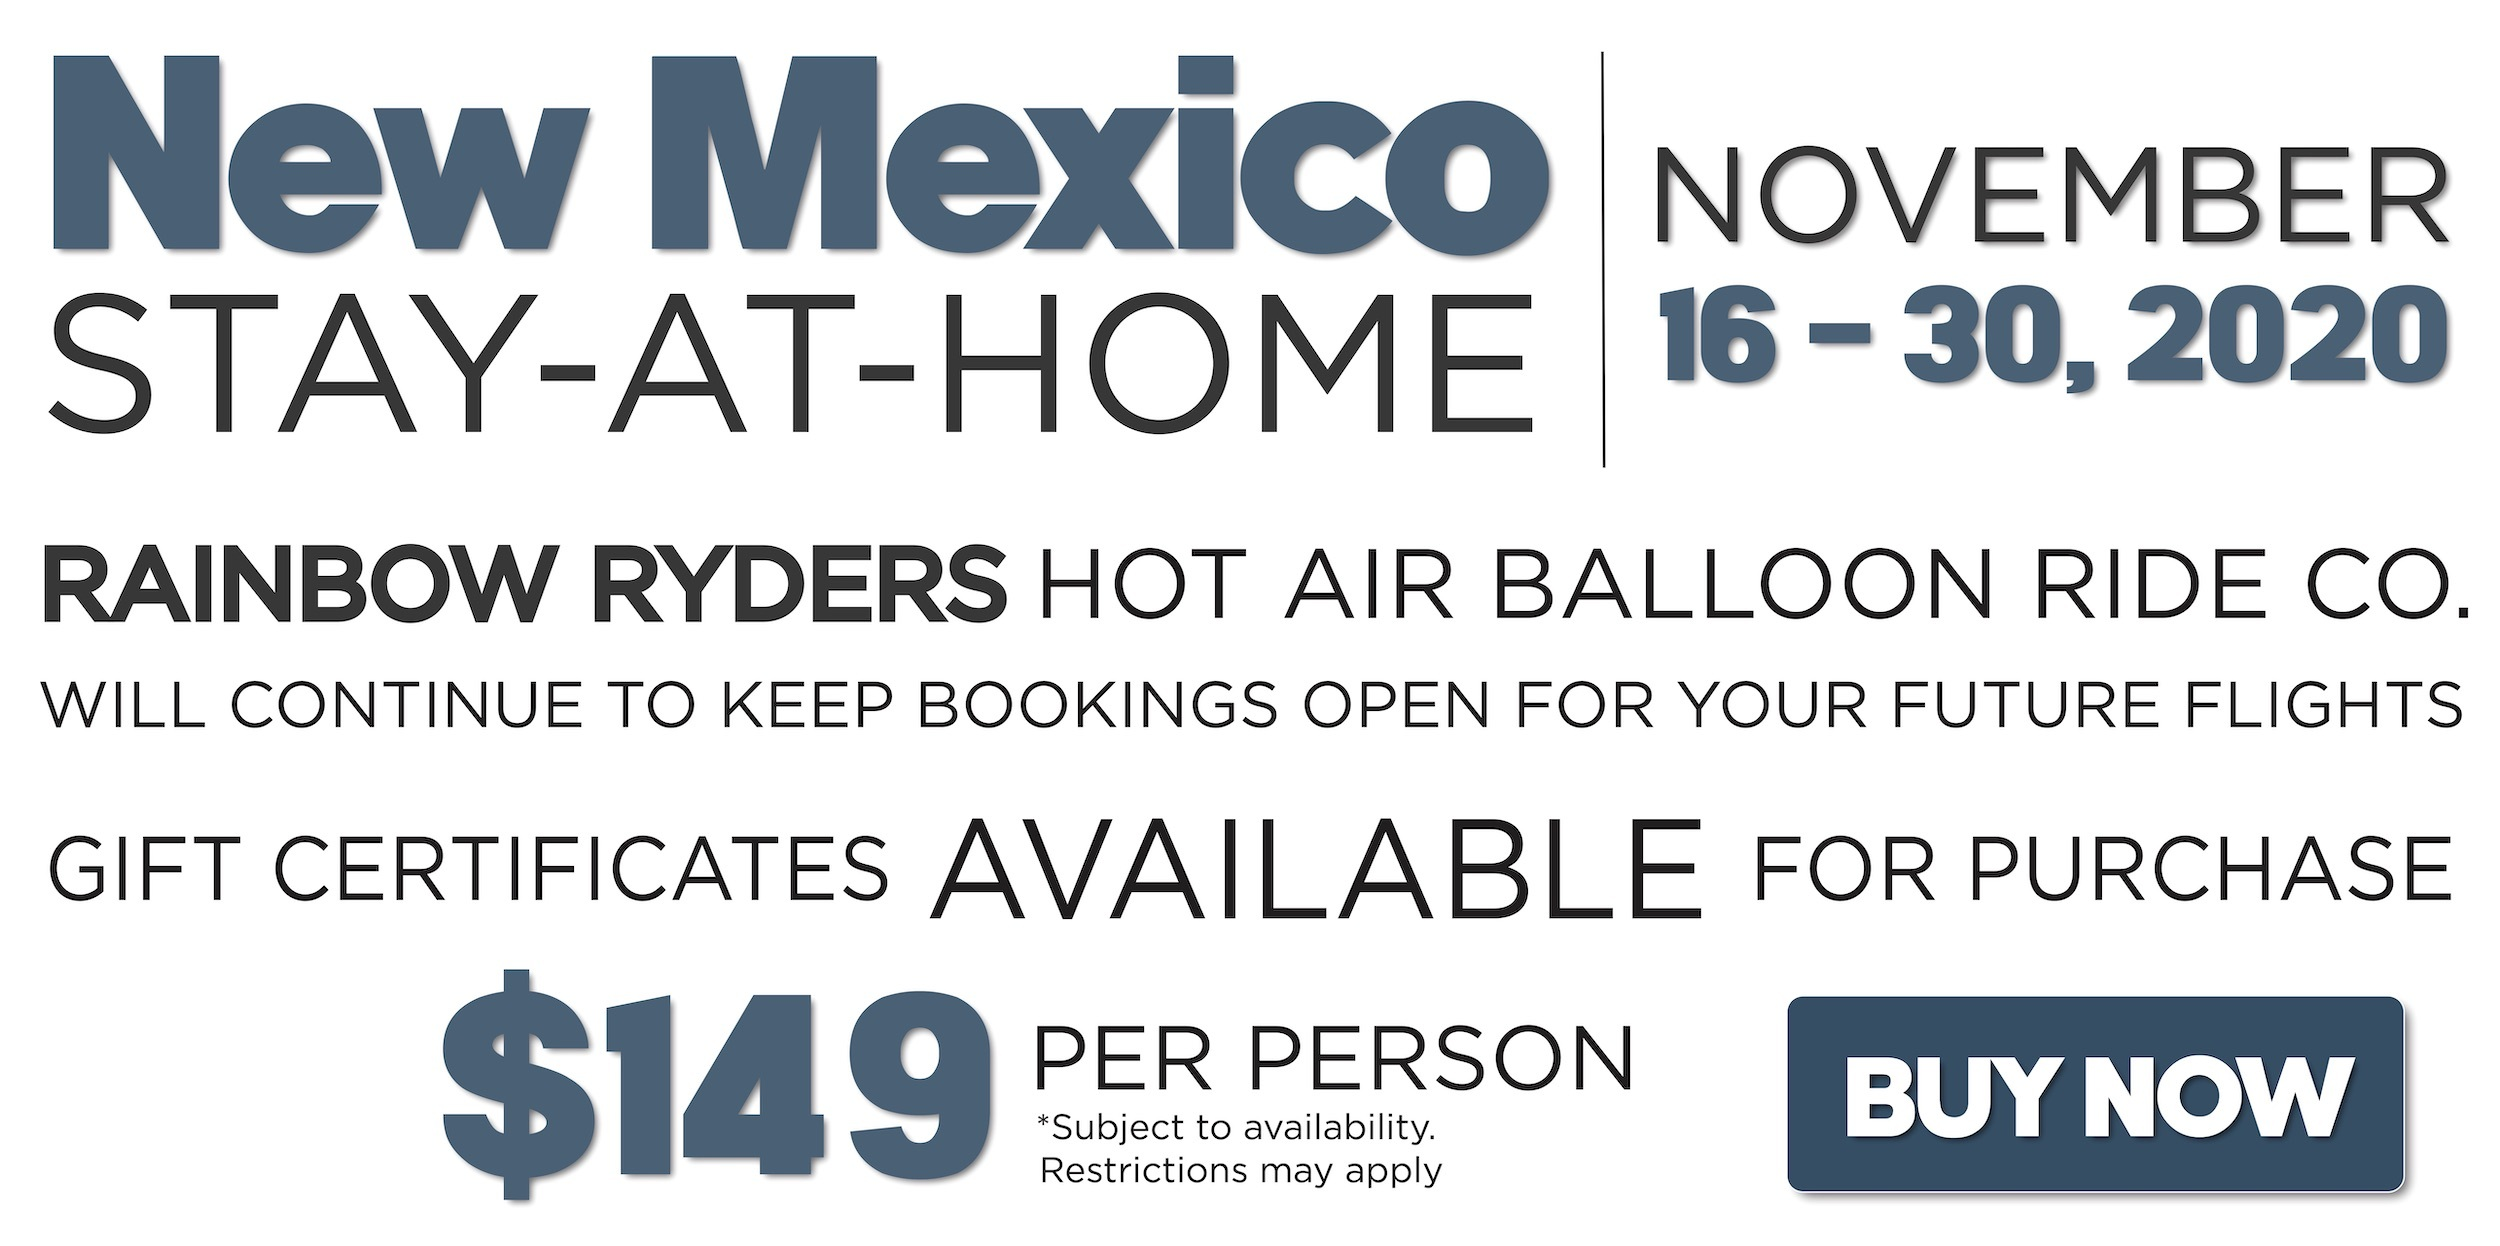 NM Stay-At-Home Order in Effect November 16 - 30, 2020.